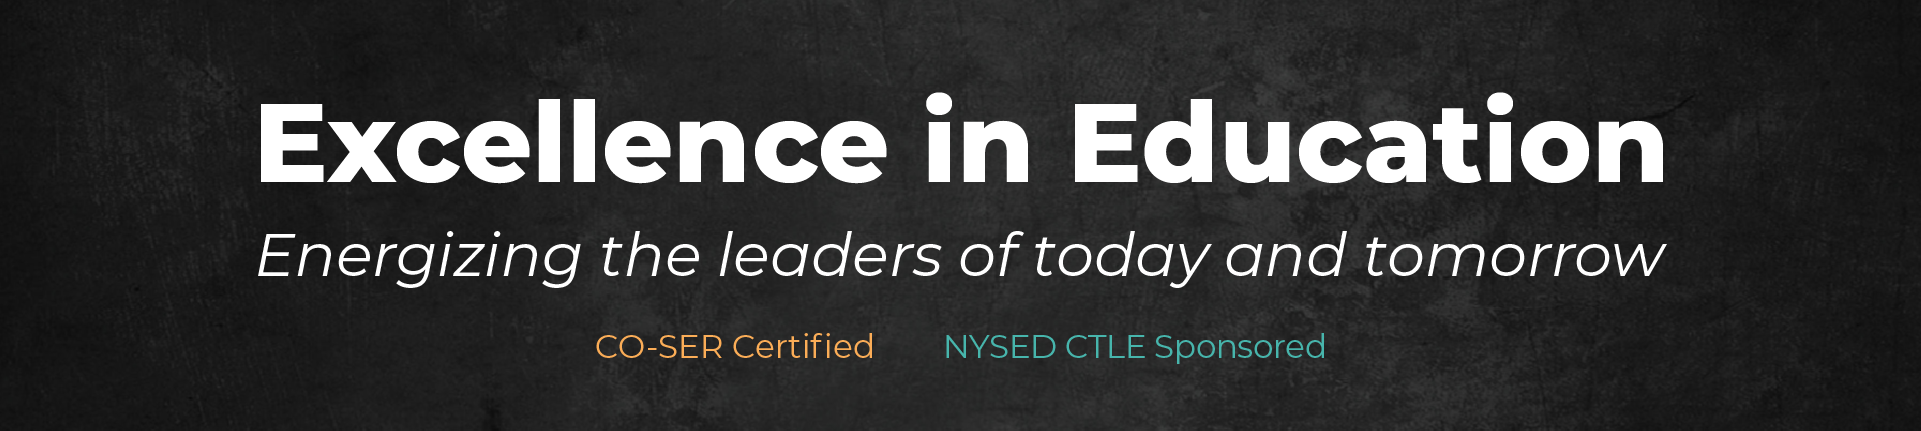 Daneli Partners Excellence in Education